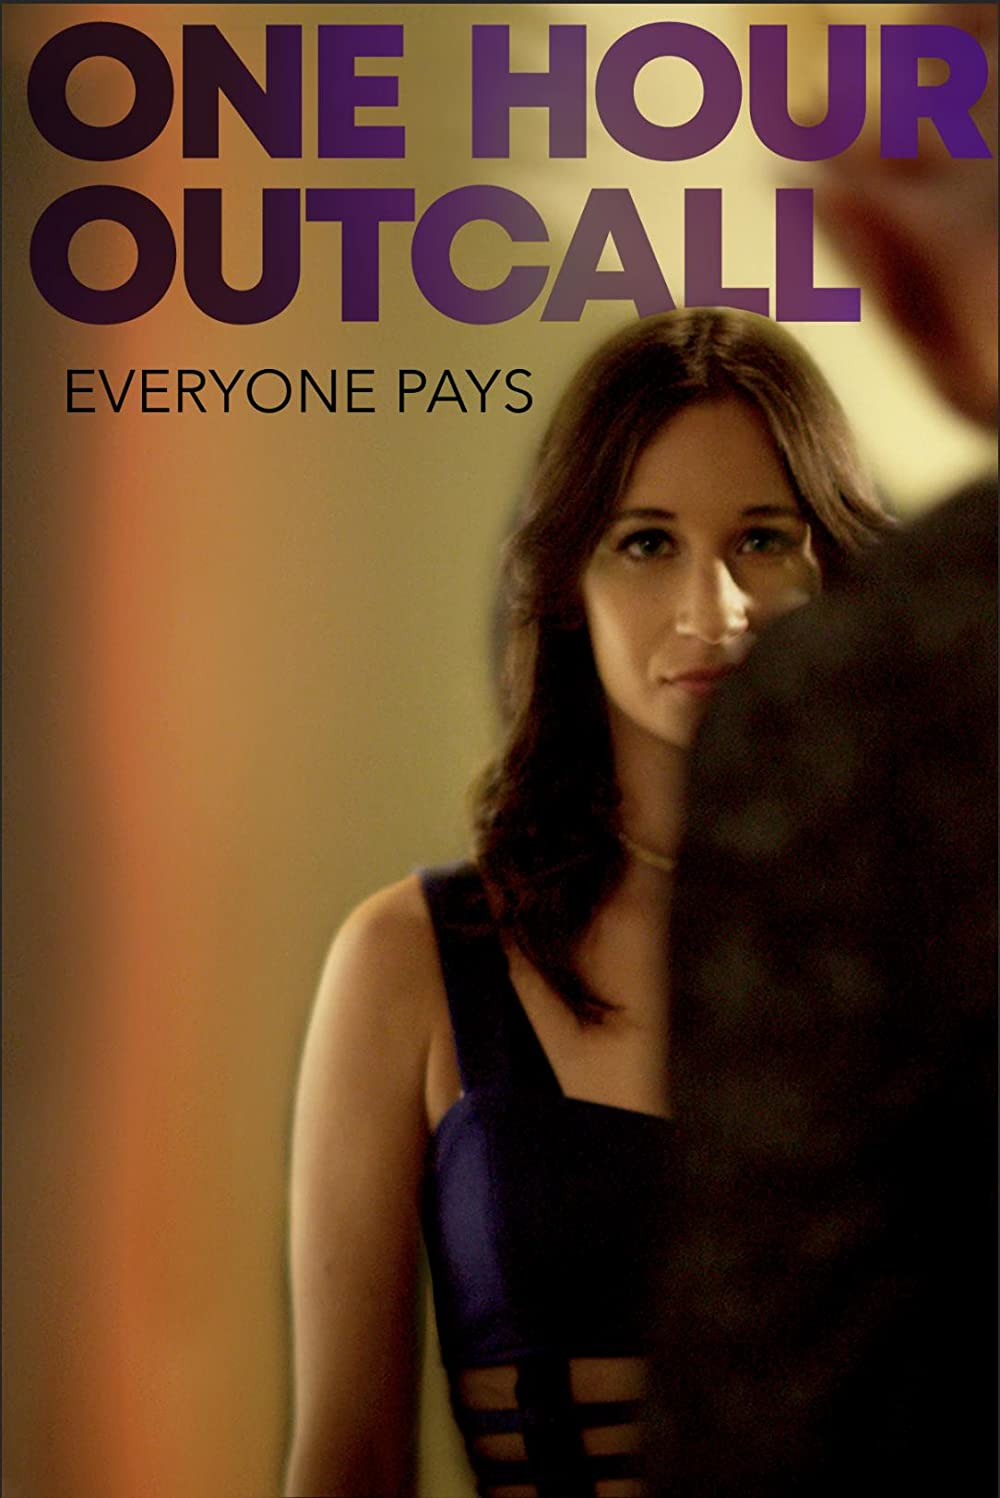 One Hour Outcall (2019) Hindi (Voice Over) Dubbed+ English [Dual Audio] WebRip 720p [1XBET]